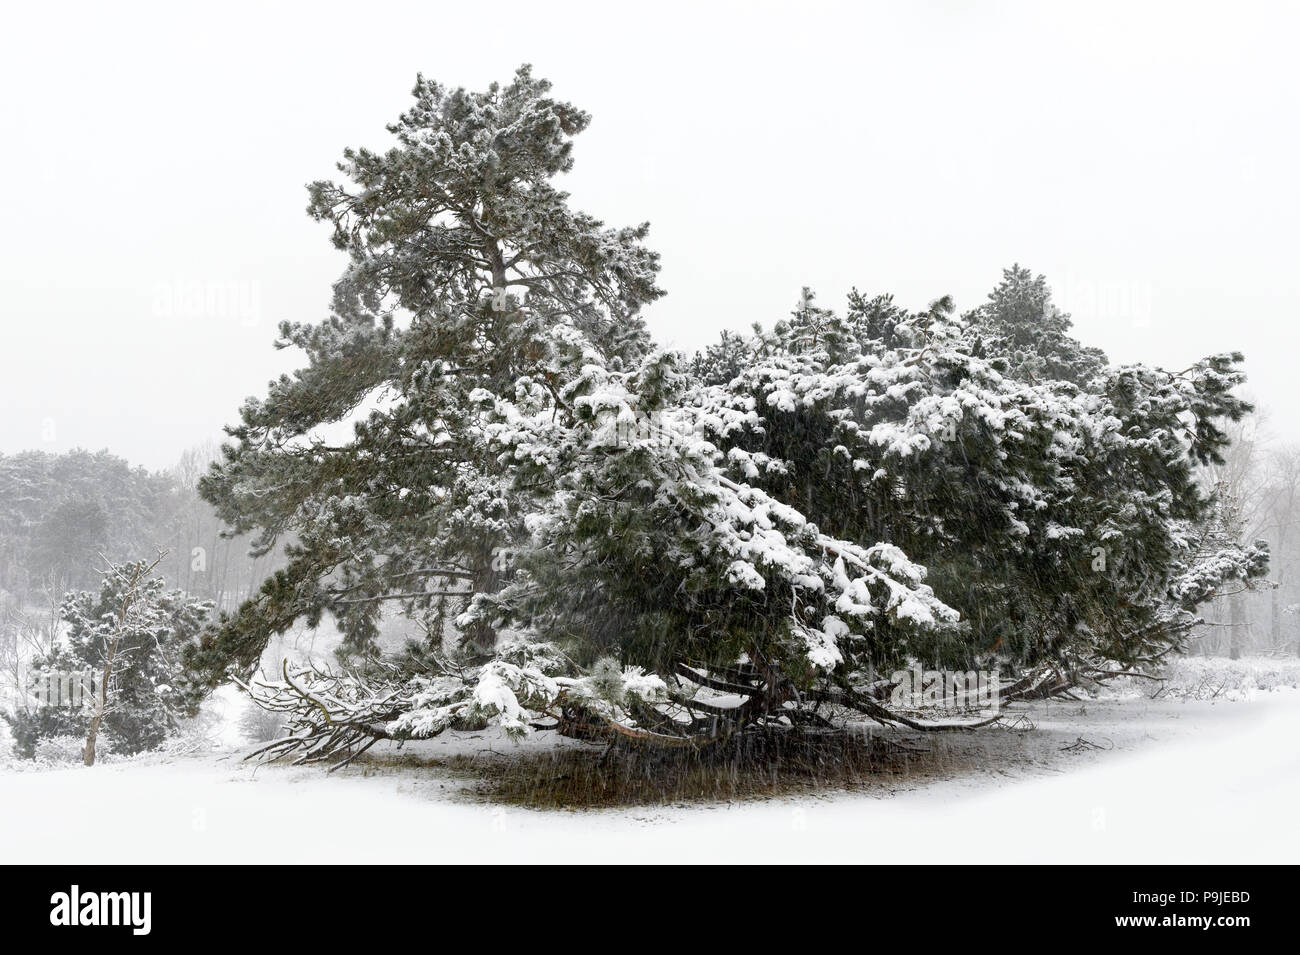 Falling snow on pine tree during winter, Amsterdamse waterleiding duinen, Netherlands. - Stock Image